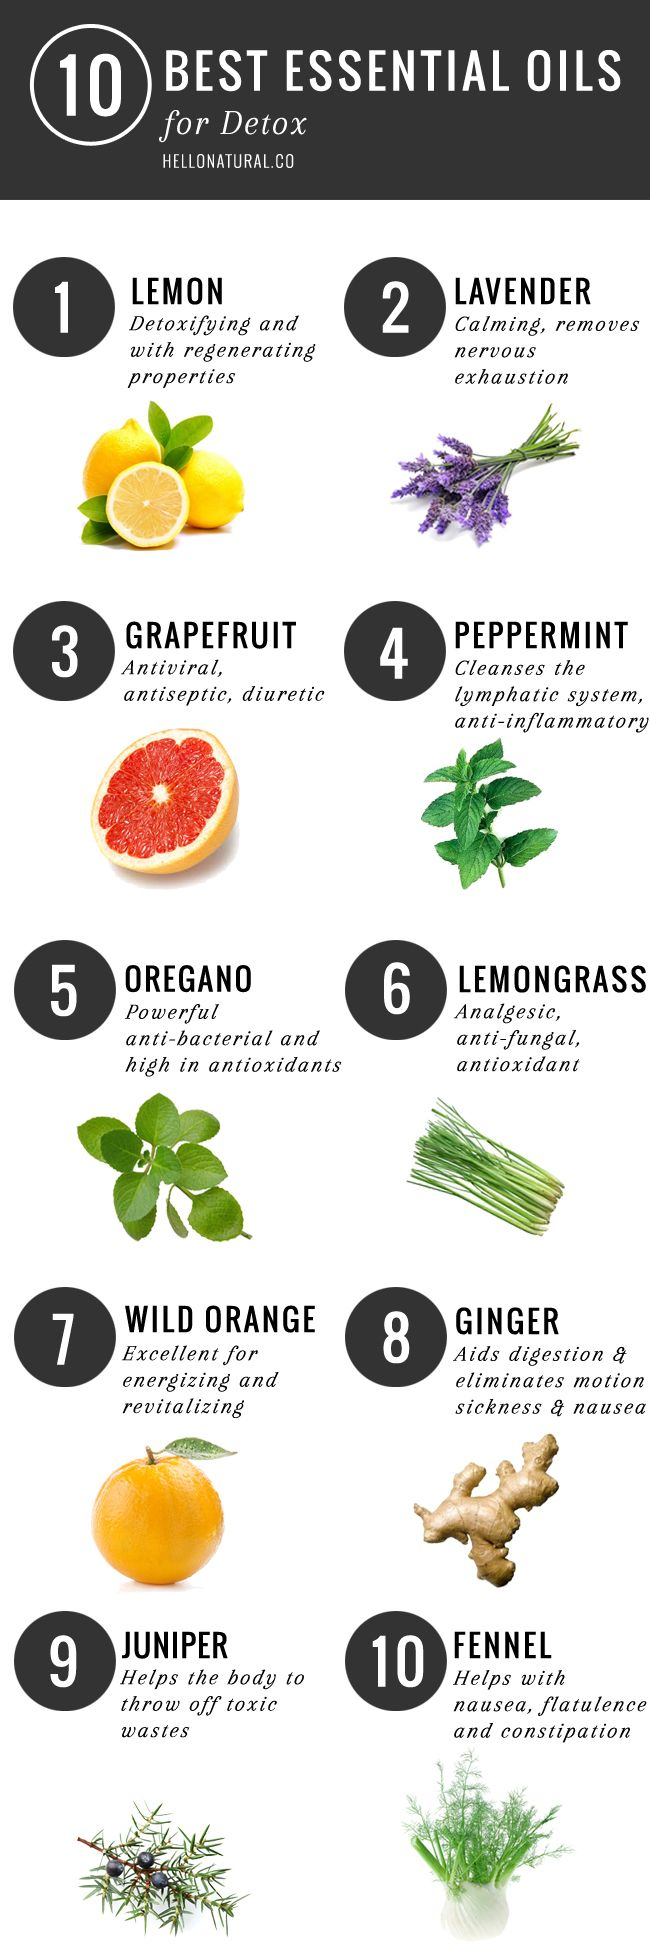 10 Best: Essential Oils for Detox | http://hellonatural.co/essential-oils-for-detox/